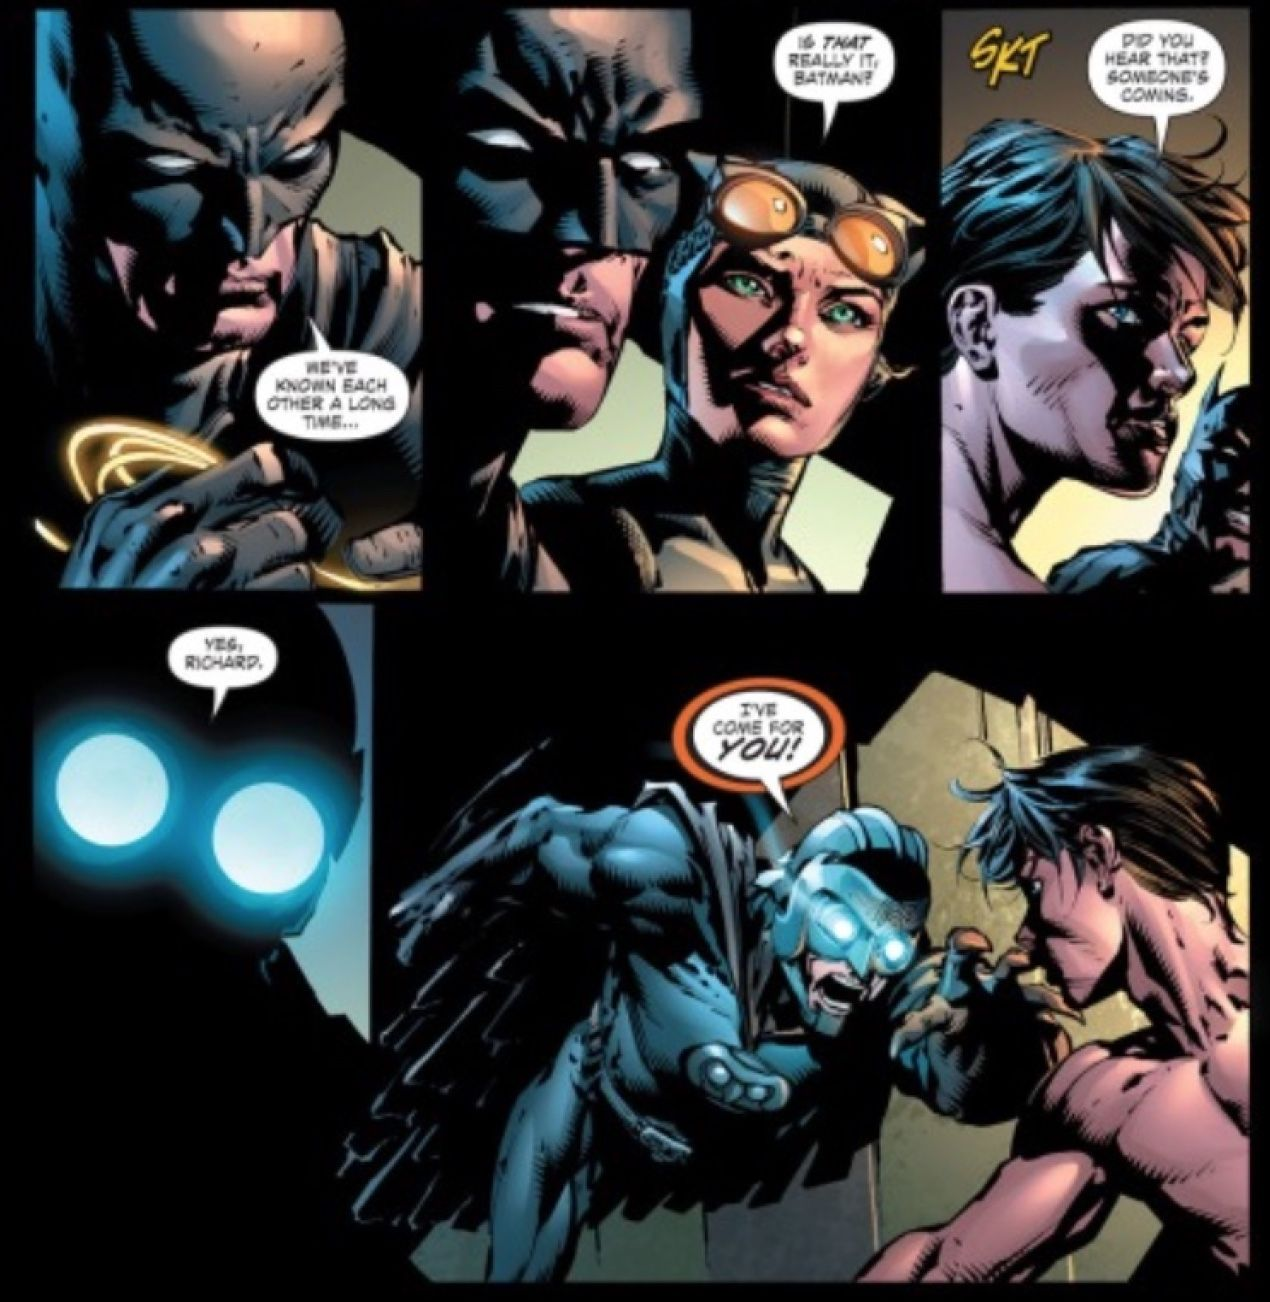 FOREVER EVIL: Owlman isn't giving up on stealing Batman's partner, Nightwing. 1/2